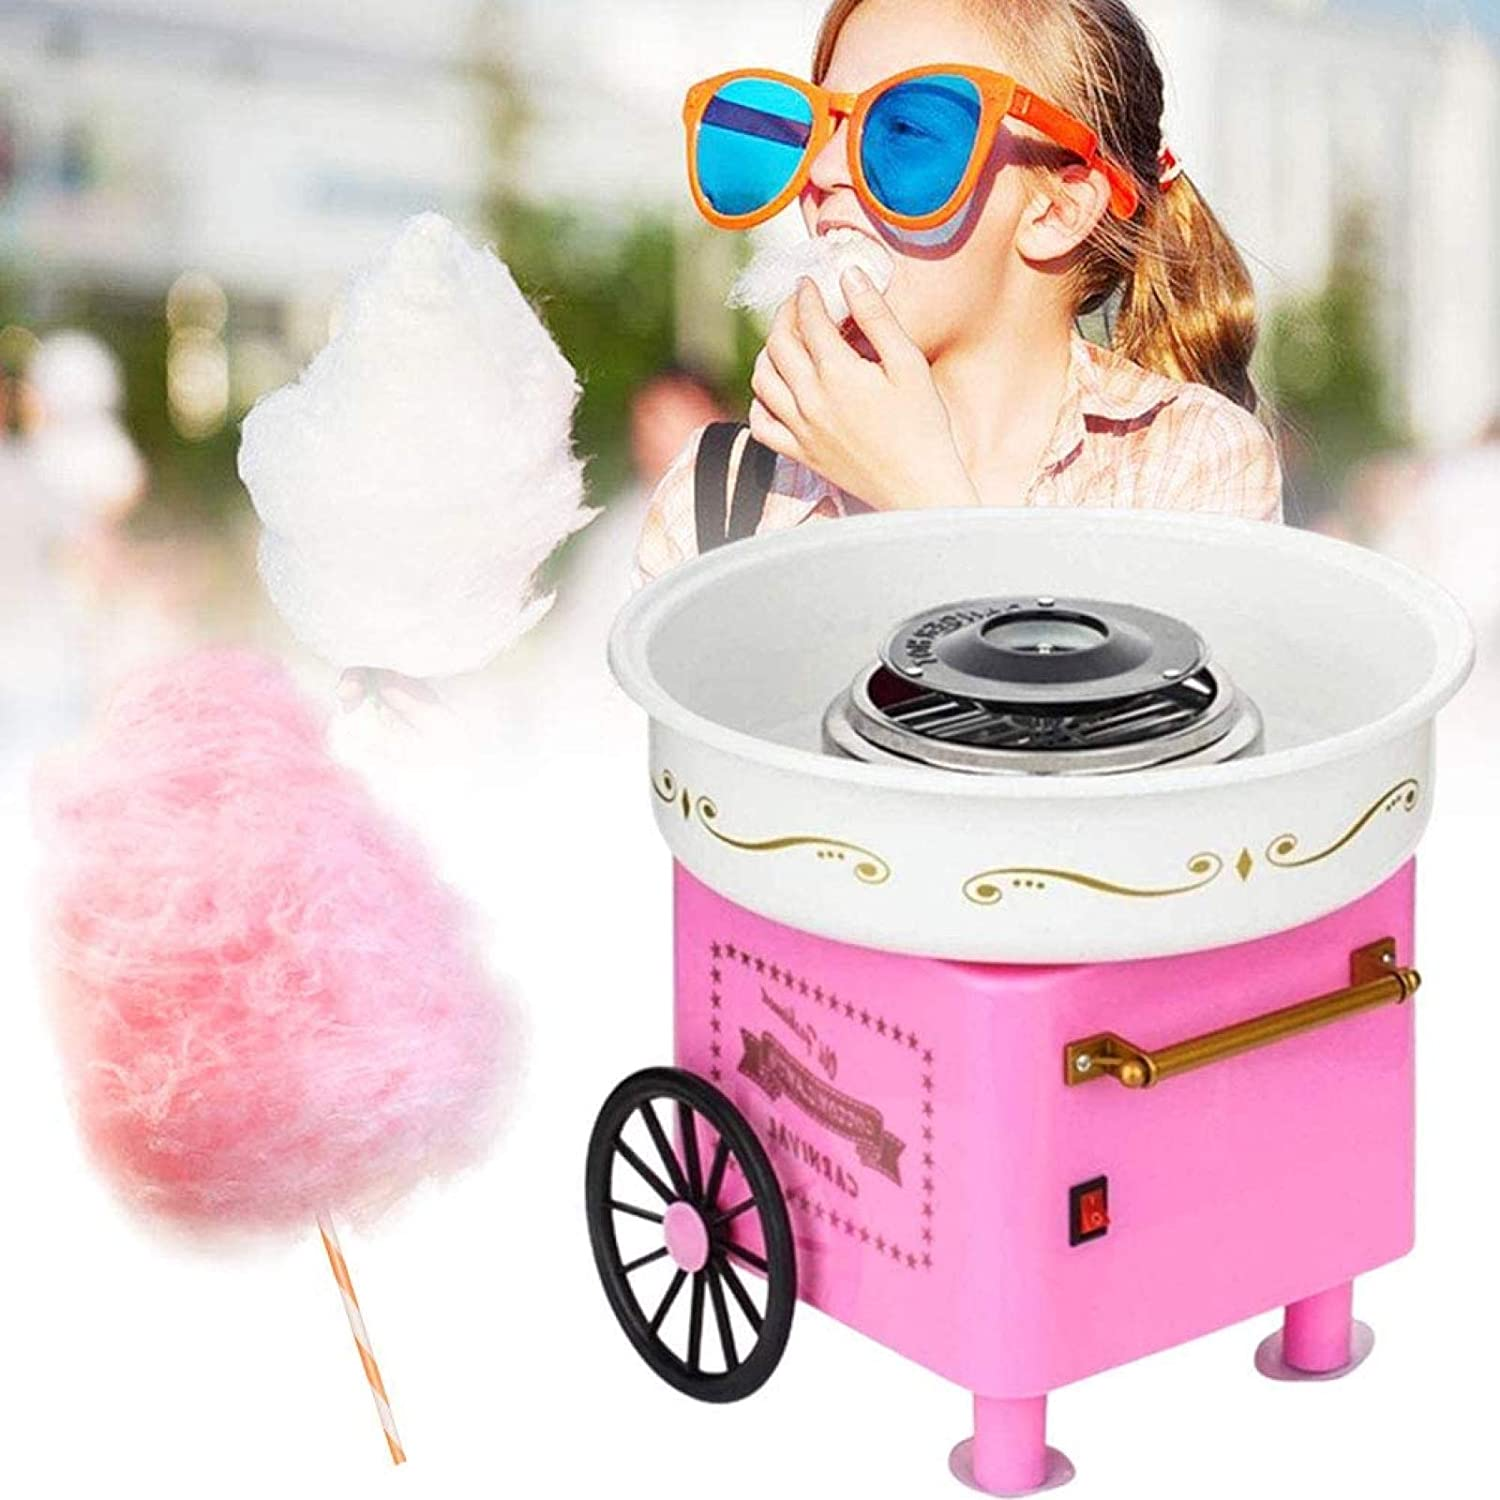 POAOVL Home Use Mini Countertop Cotton Candy Maker and Electric Candy Floss Maker Nostalgia Cotton Candy Maker for Kids Children Pink Trolley Creative Gift